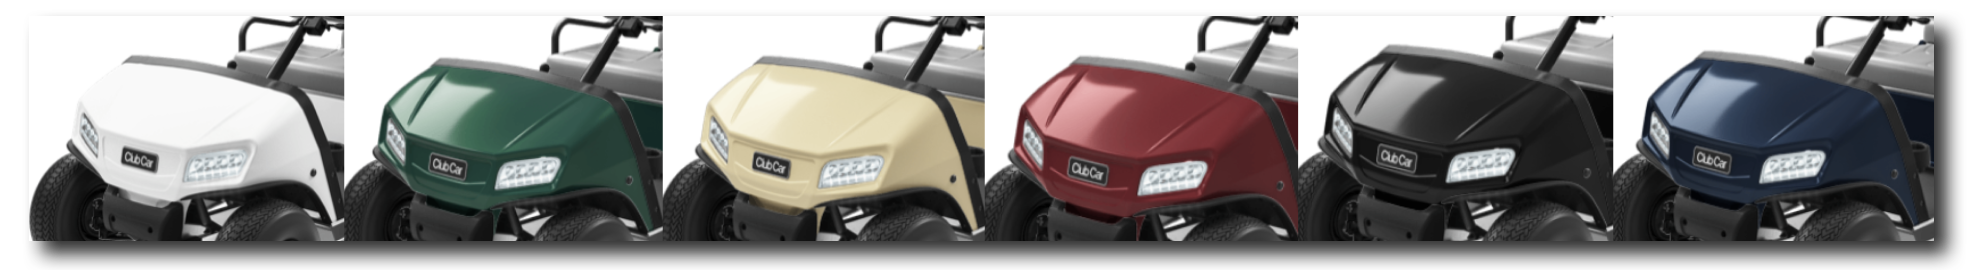 Club-Car-Villager-Utility-Vehicle-Available-Colors